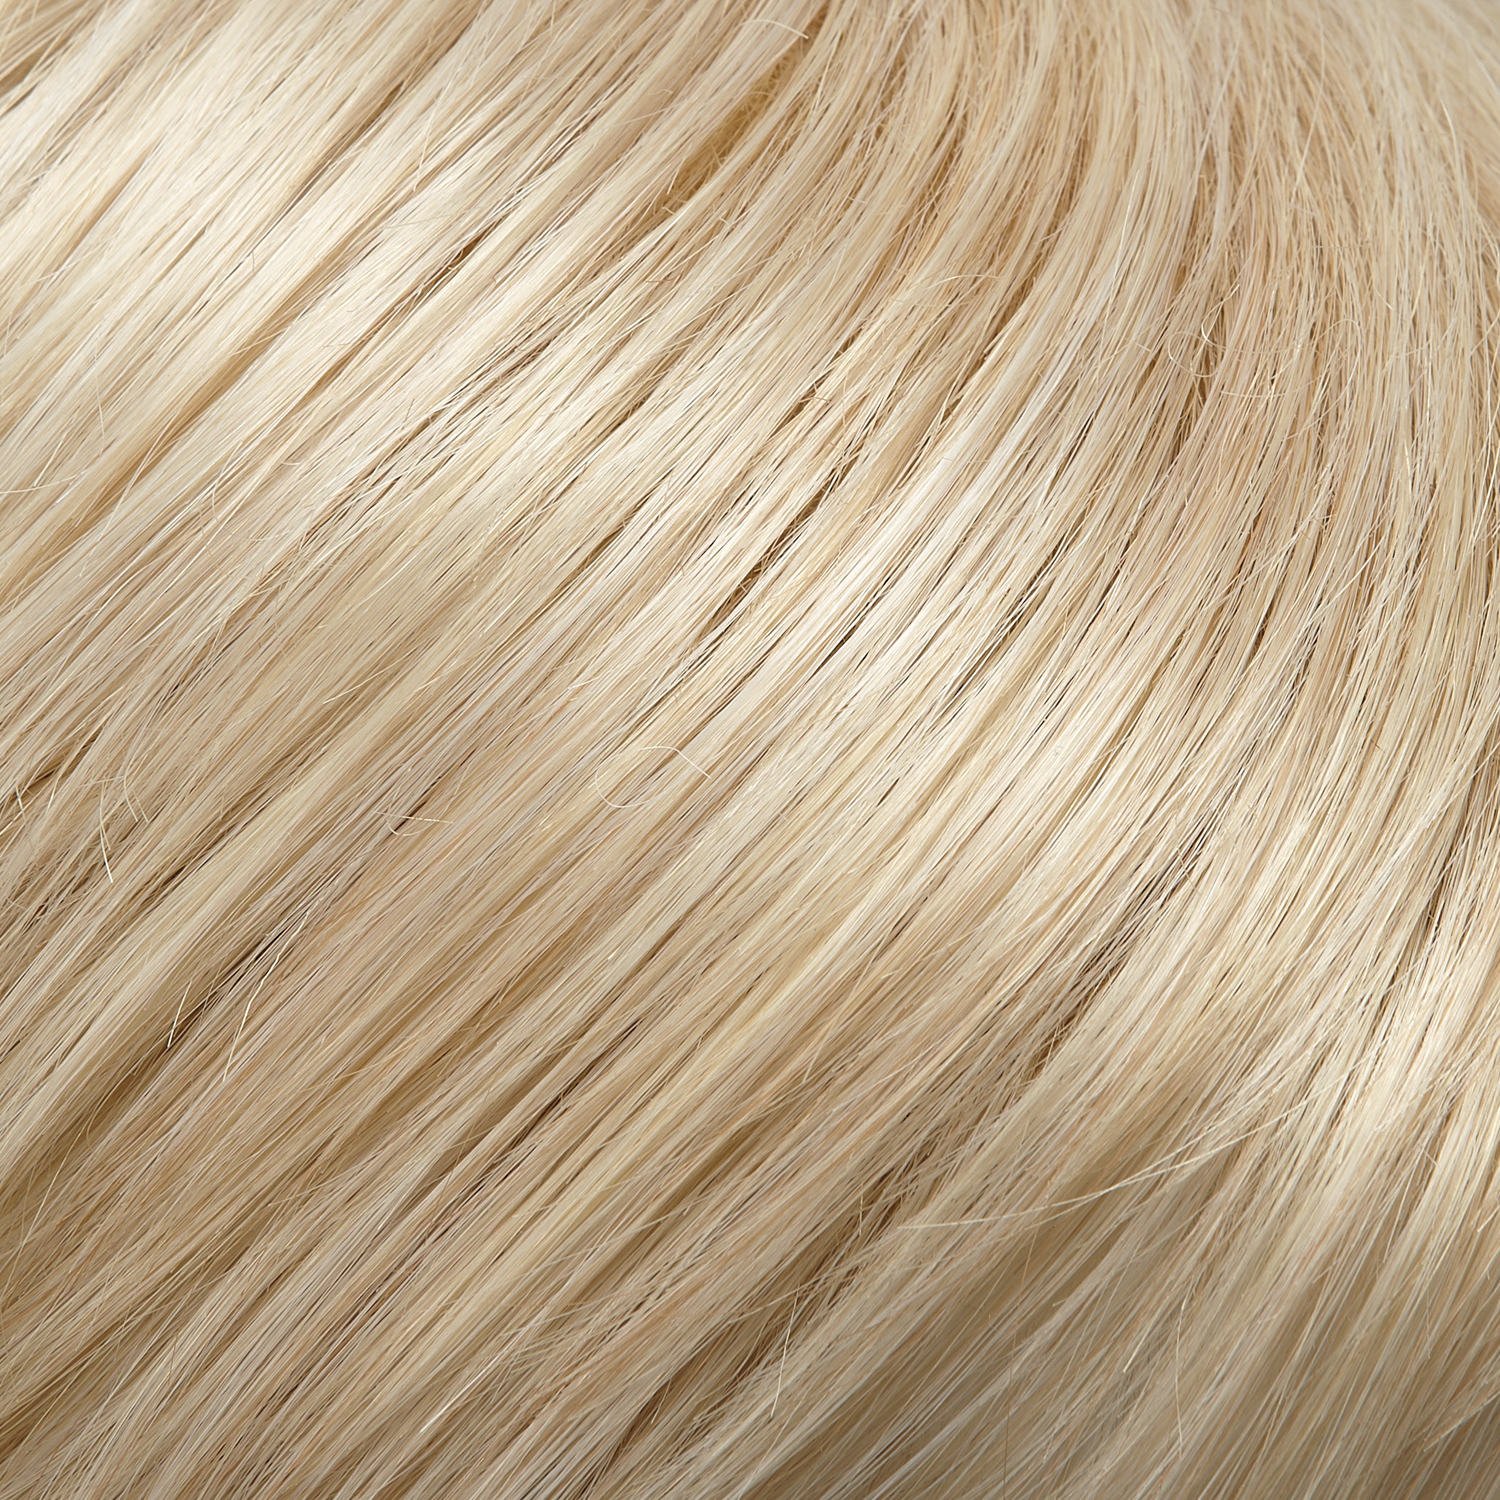 102F - Pale Platinum Blonde with Pale Natural Golden Blonde Blend